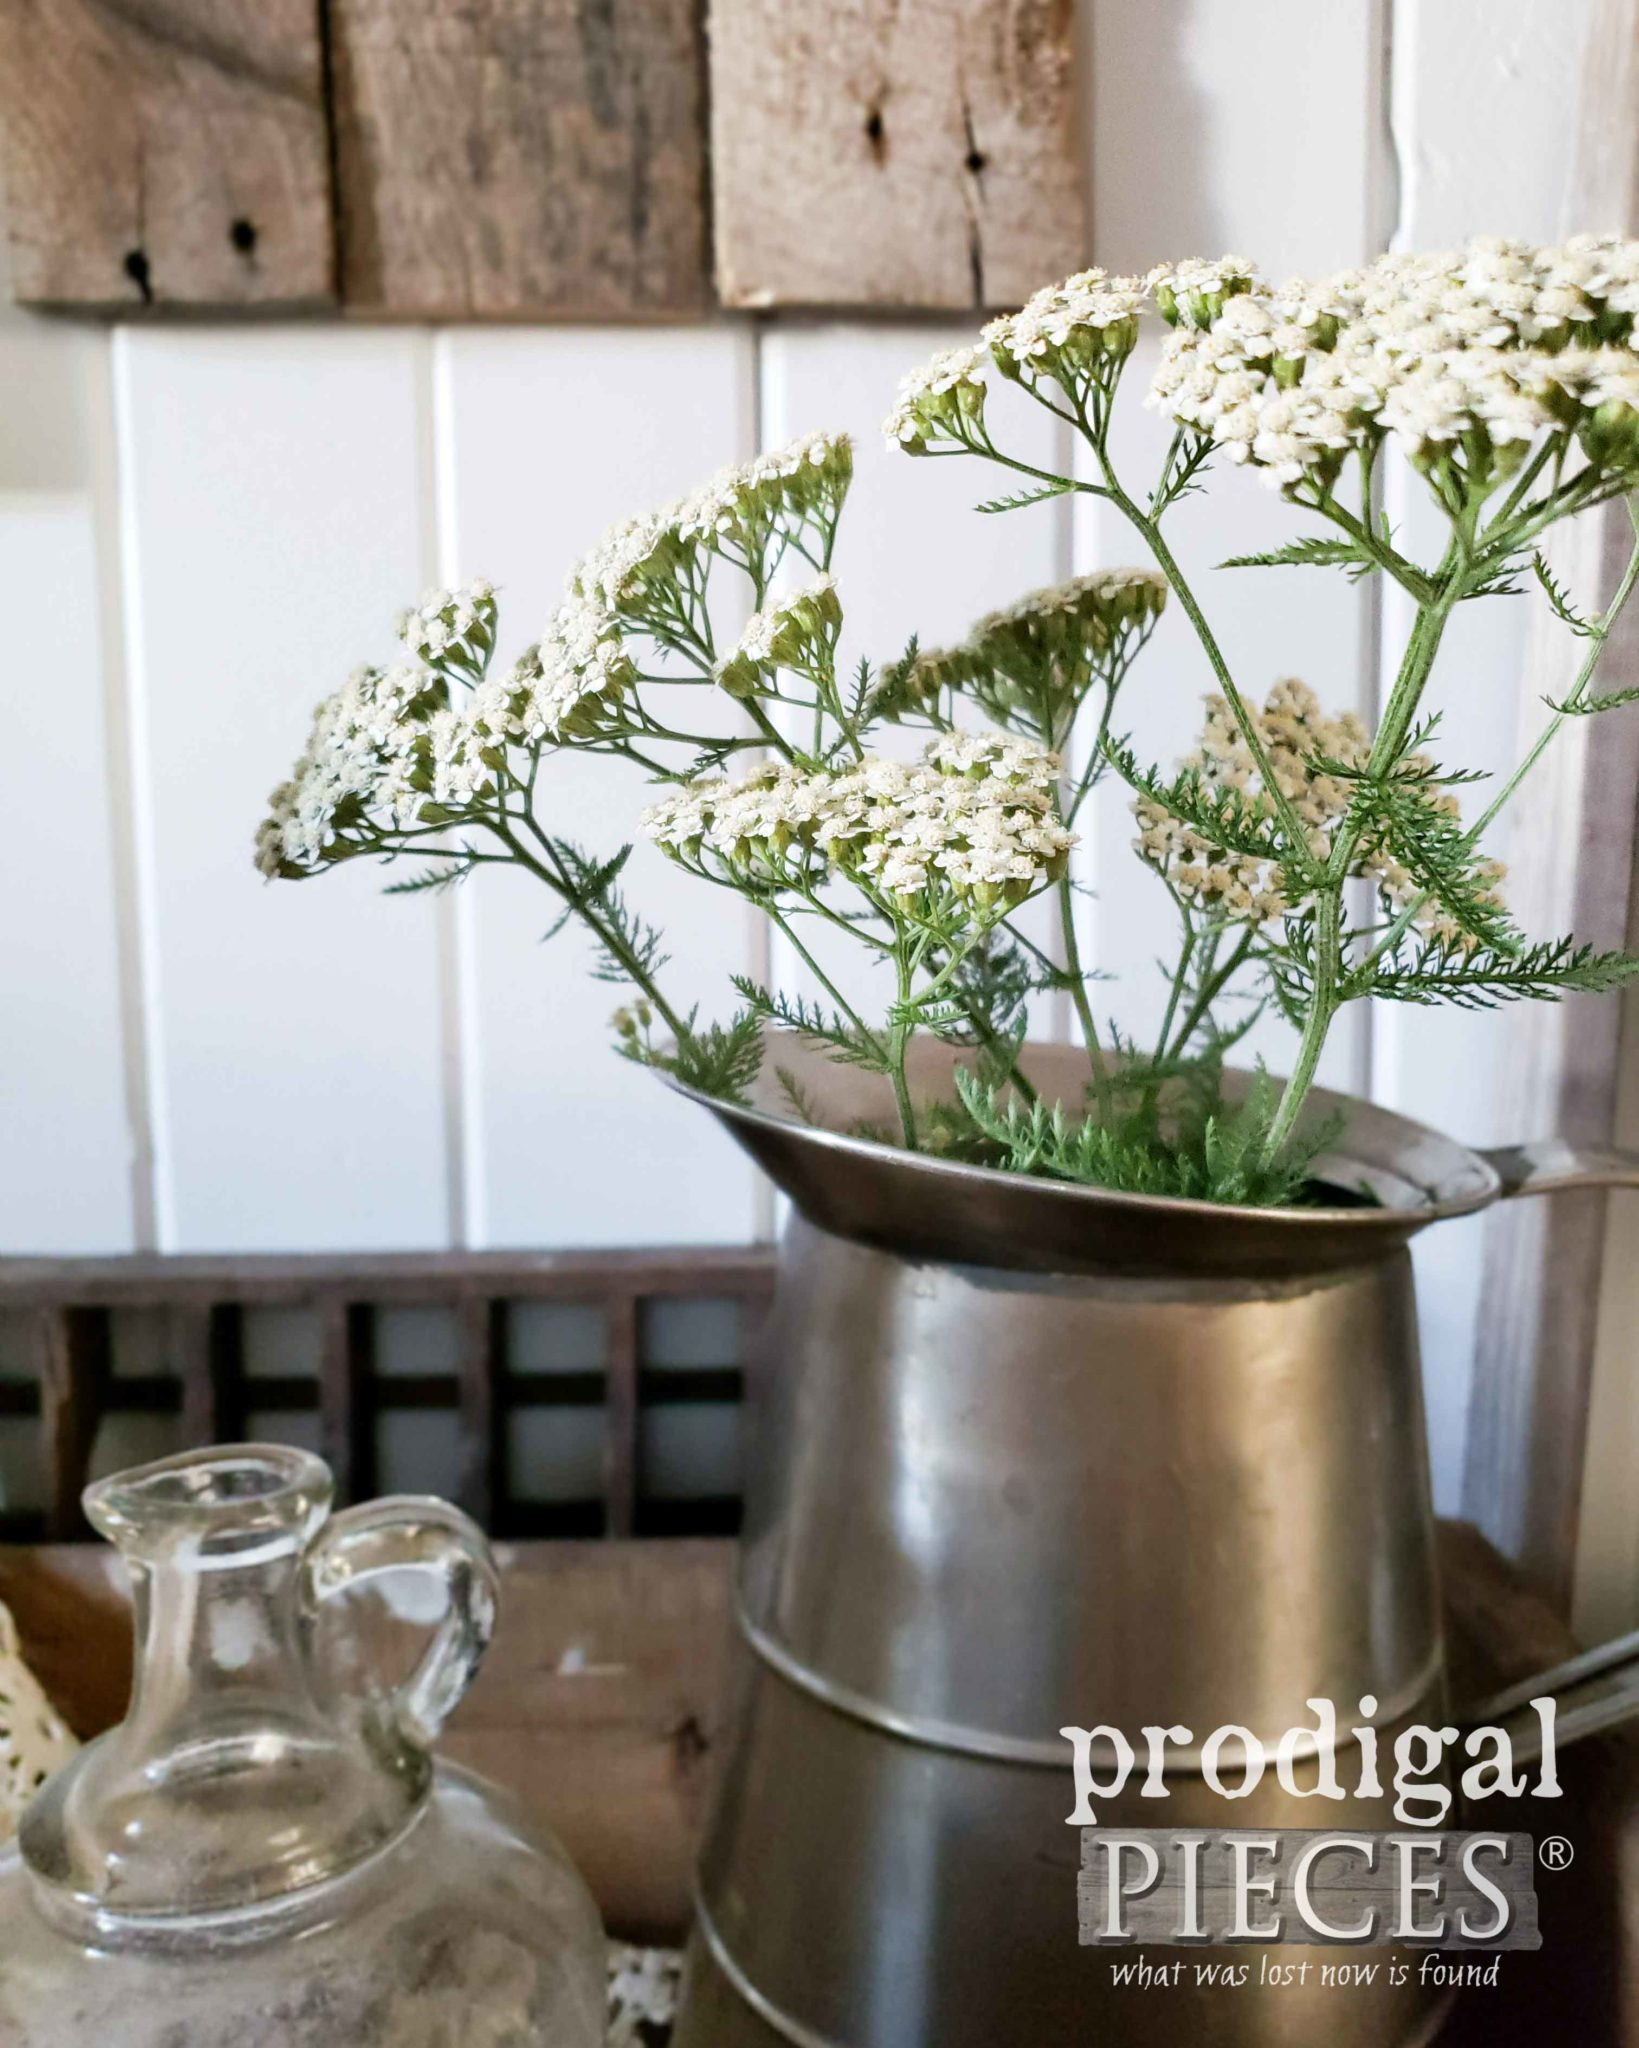 Pitcher of Yarrow for Simple Farmhouse Decor by Larissa of Prodigal Pieces | prodigalpieces #prodigalpieces #farmhouse #flowers #home #homedecor